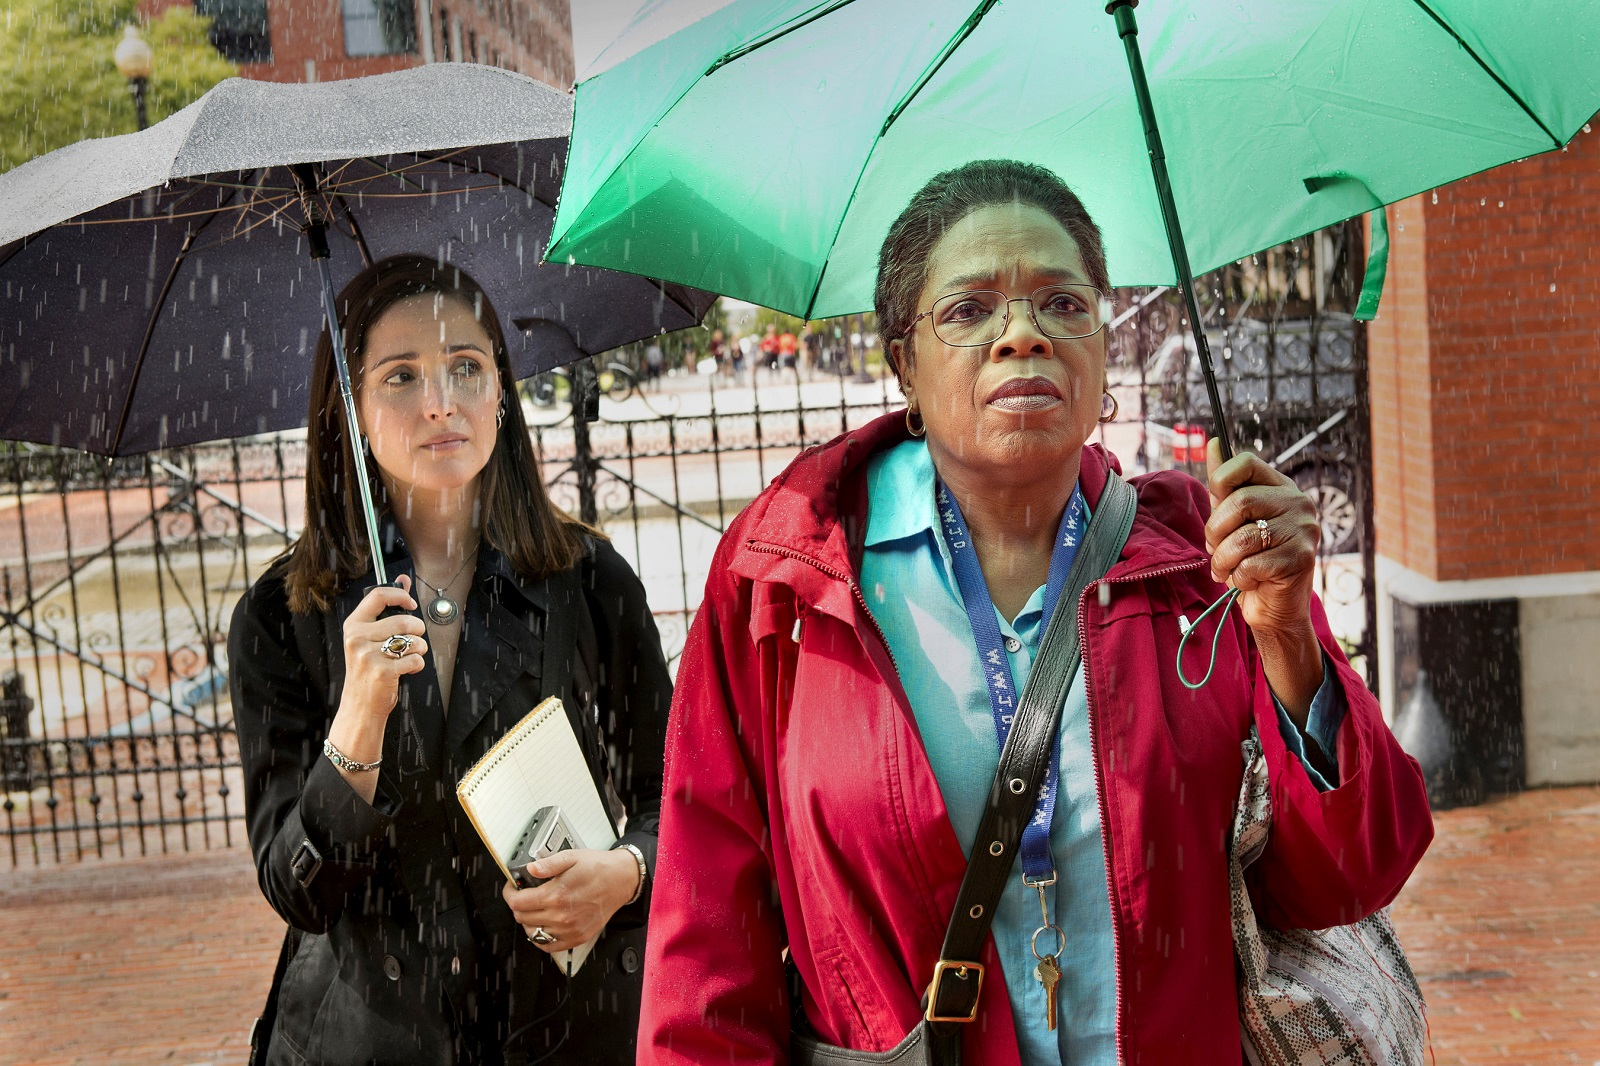 Rose Byrne and Oprah Winfrey star in HBO's 'The Immortal Life of Henrietta Lacks,' which airs on HBO on April 22. (Quantrell Colbert, HBO)